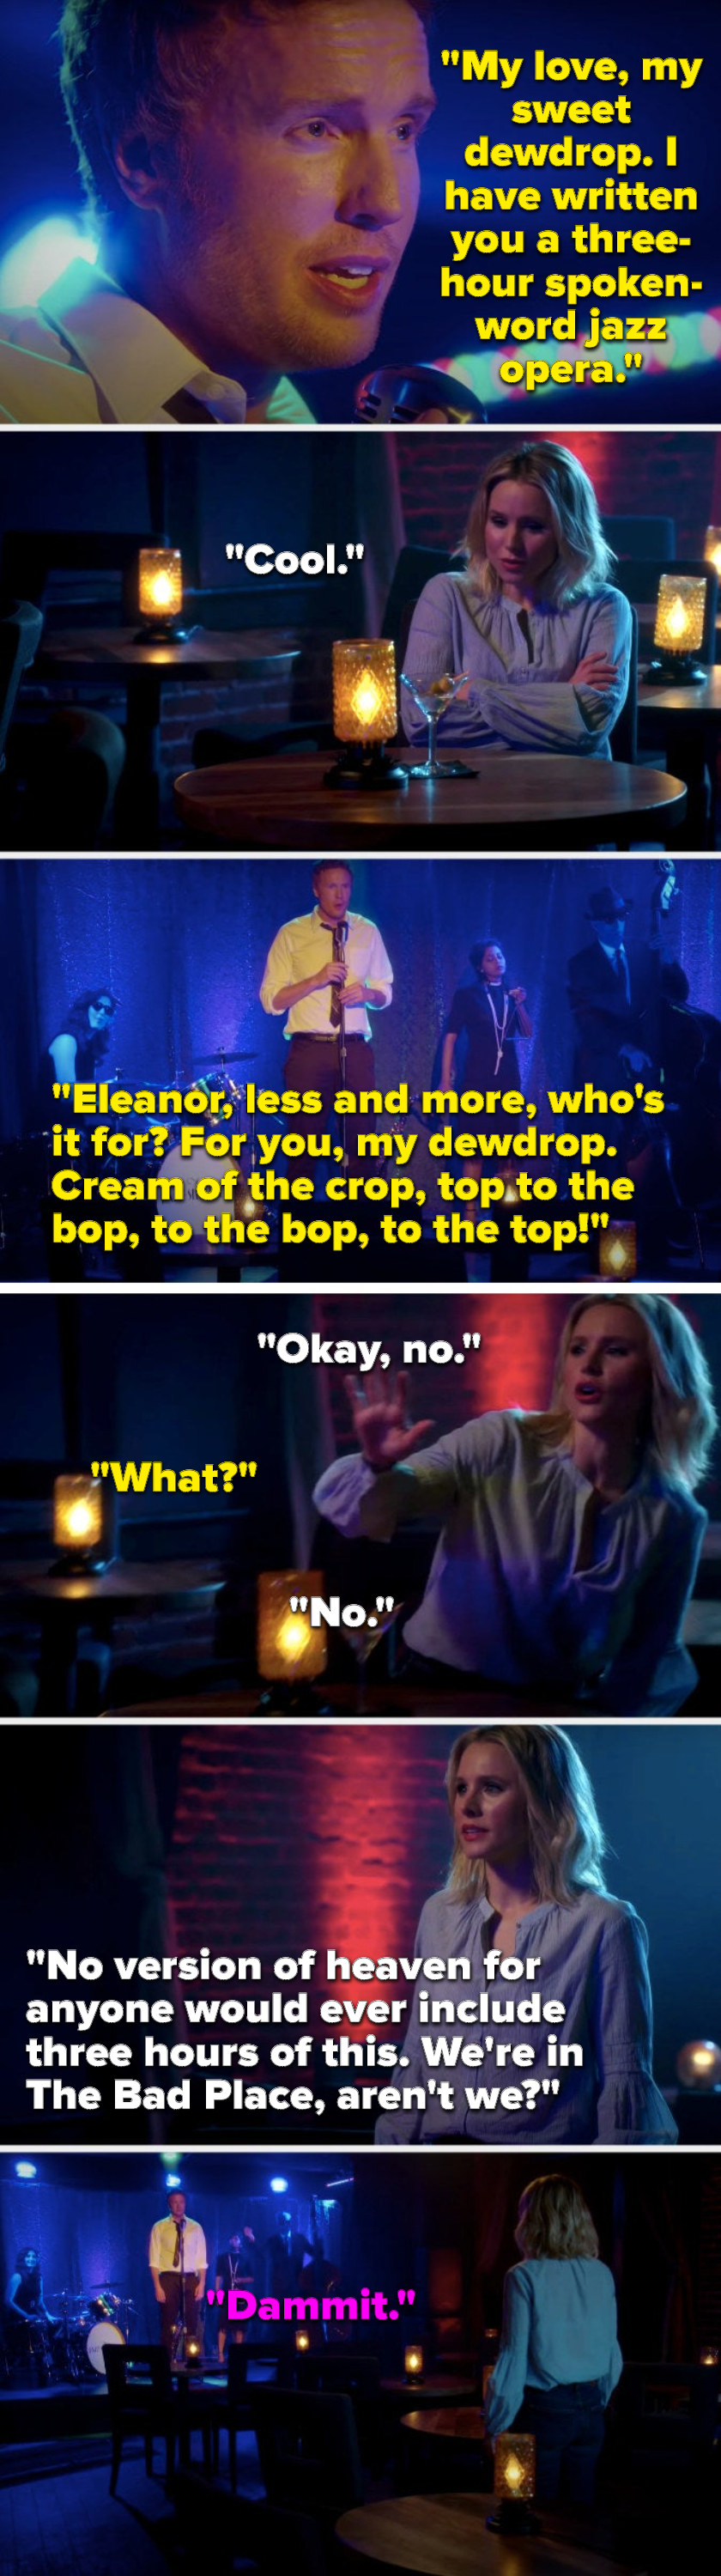 """Sebastian says, """"My dewdrop, I've written you a spoken-word jazz opera, Eleanor, who's it for, you my dewdrop, cream of the crop, top to the bop to the bop to the top,"""" Eleanor says, """"No version of heaven includes 3 hours of this, we're in The Bad Place"""""""